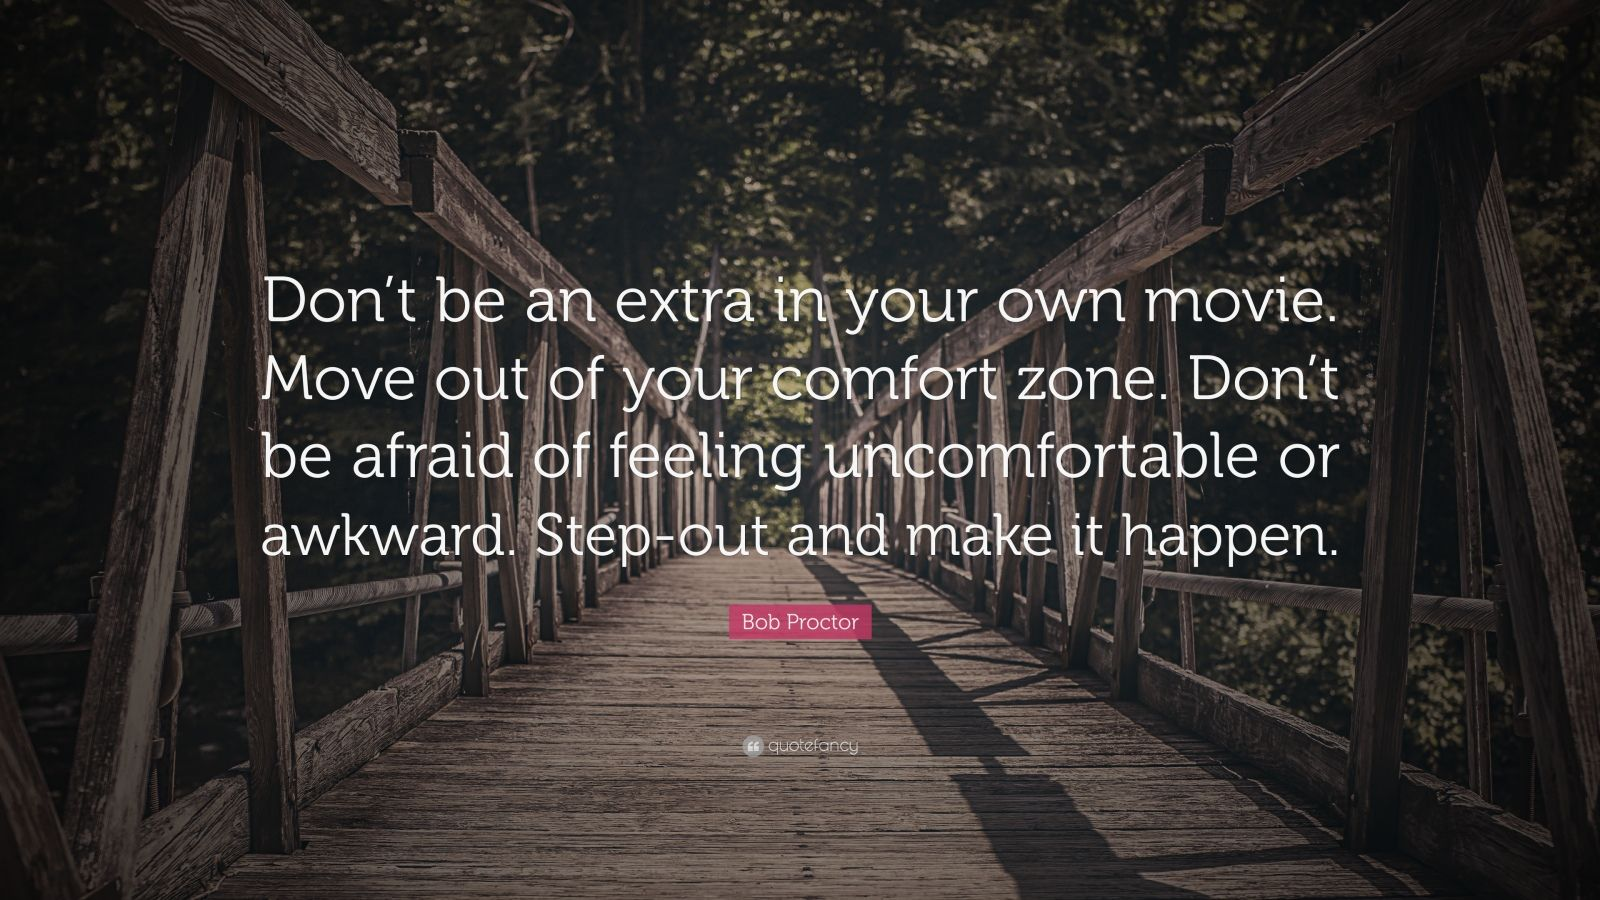 """Bob Proctor Quote: """"Don't be an extra in your own movie. Move out of your comfort zone. Don't be afraid of feeling uncomfortable or awkward. Step-out and make it happen."""""""